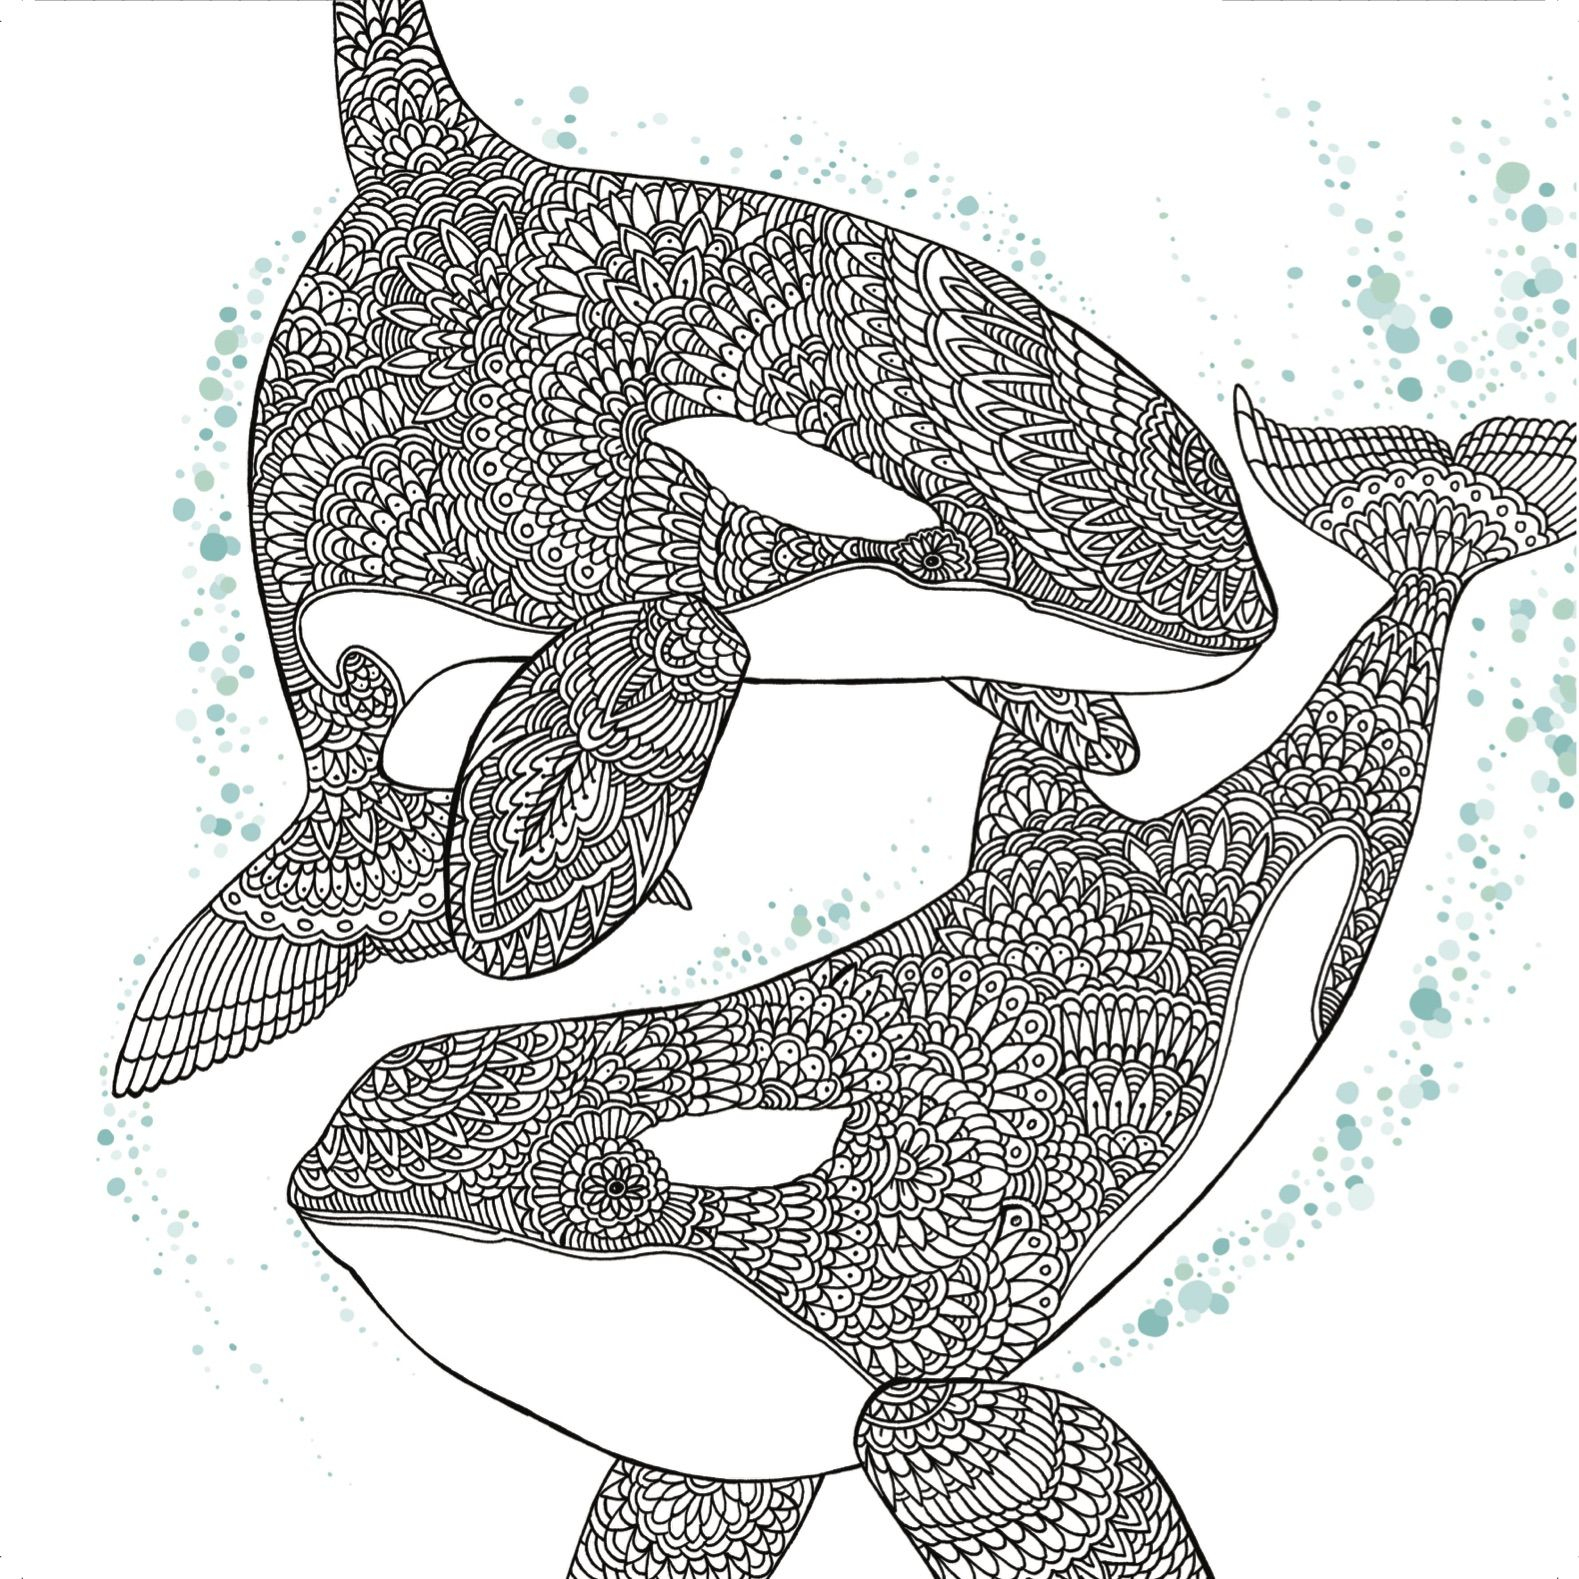 Shamu Coloring Pages Coloring Pages For Kids Orca Printable Coloring Page For Kids